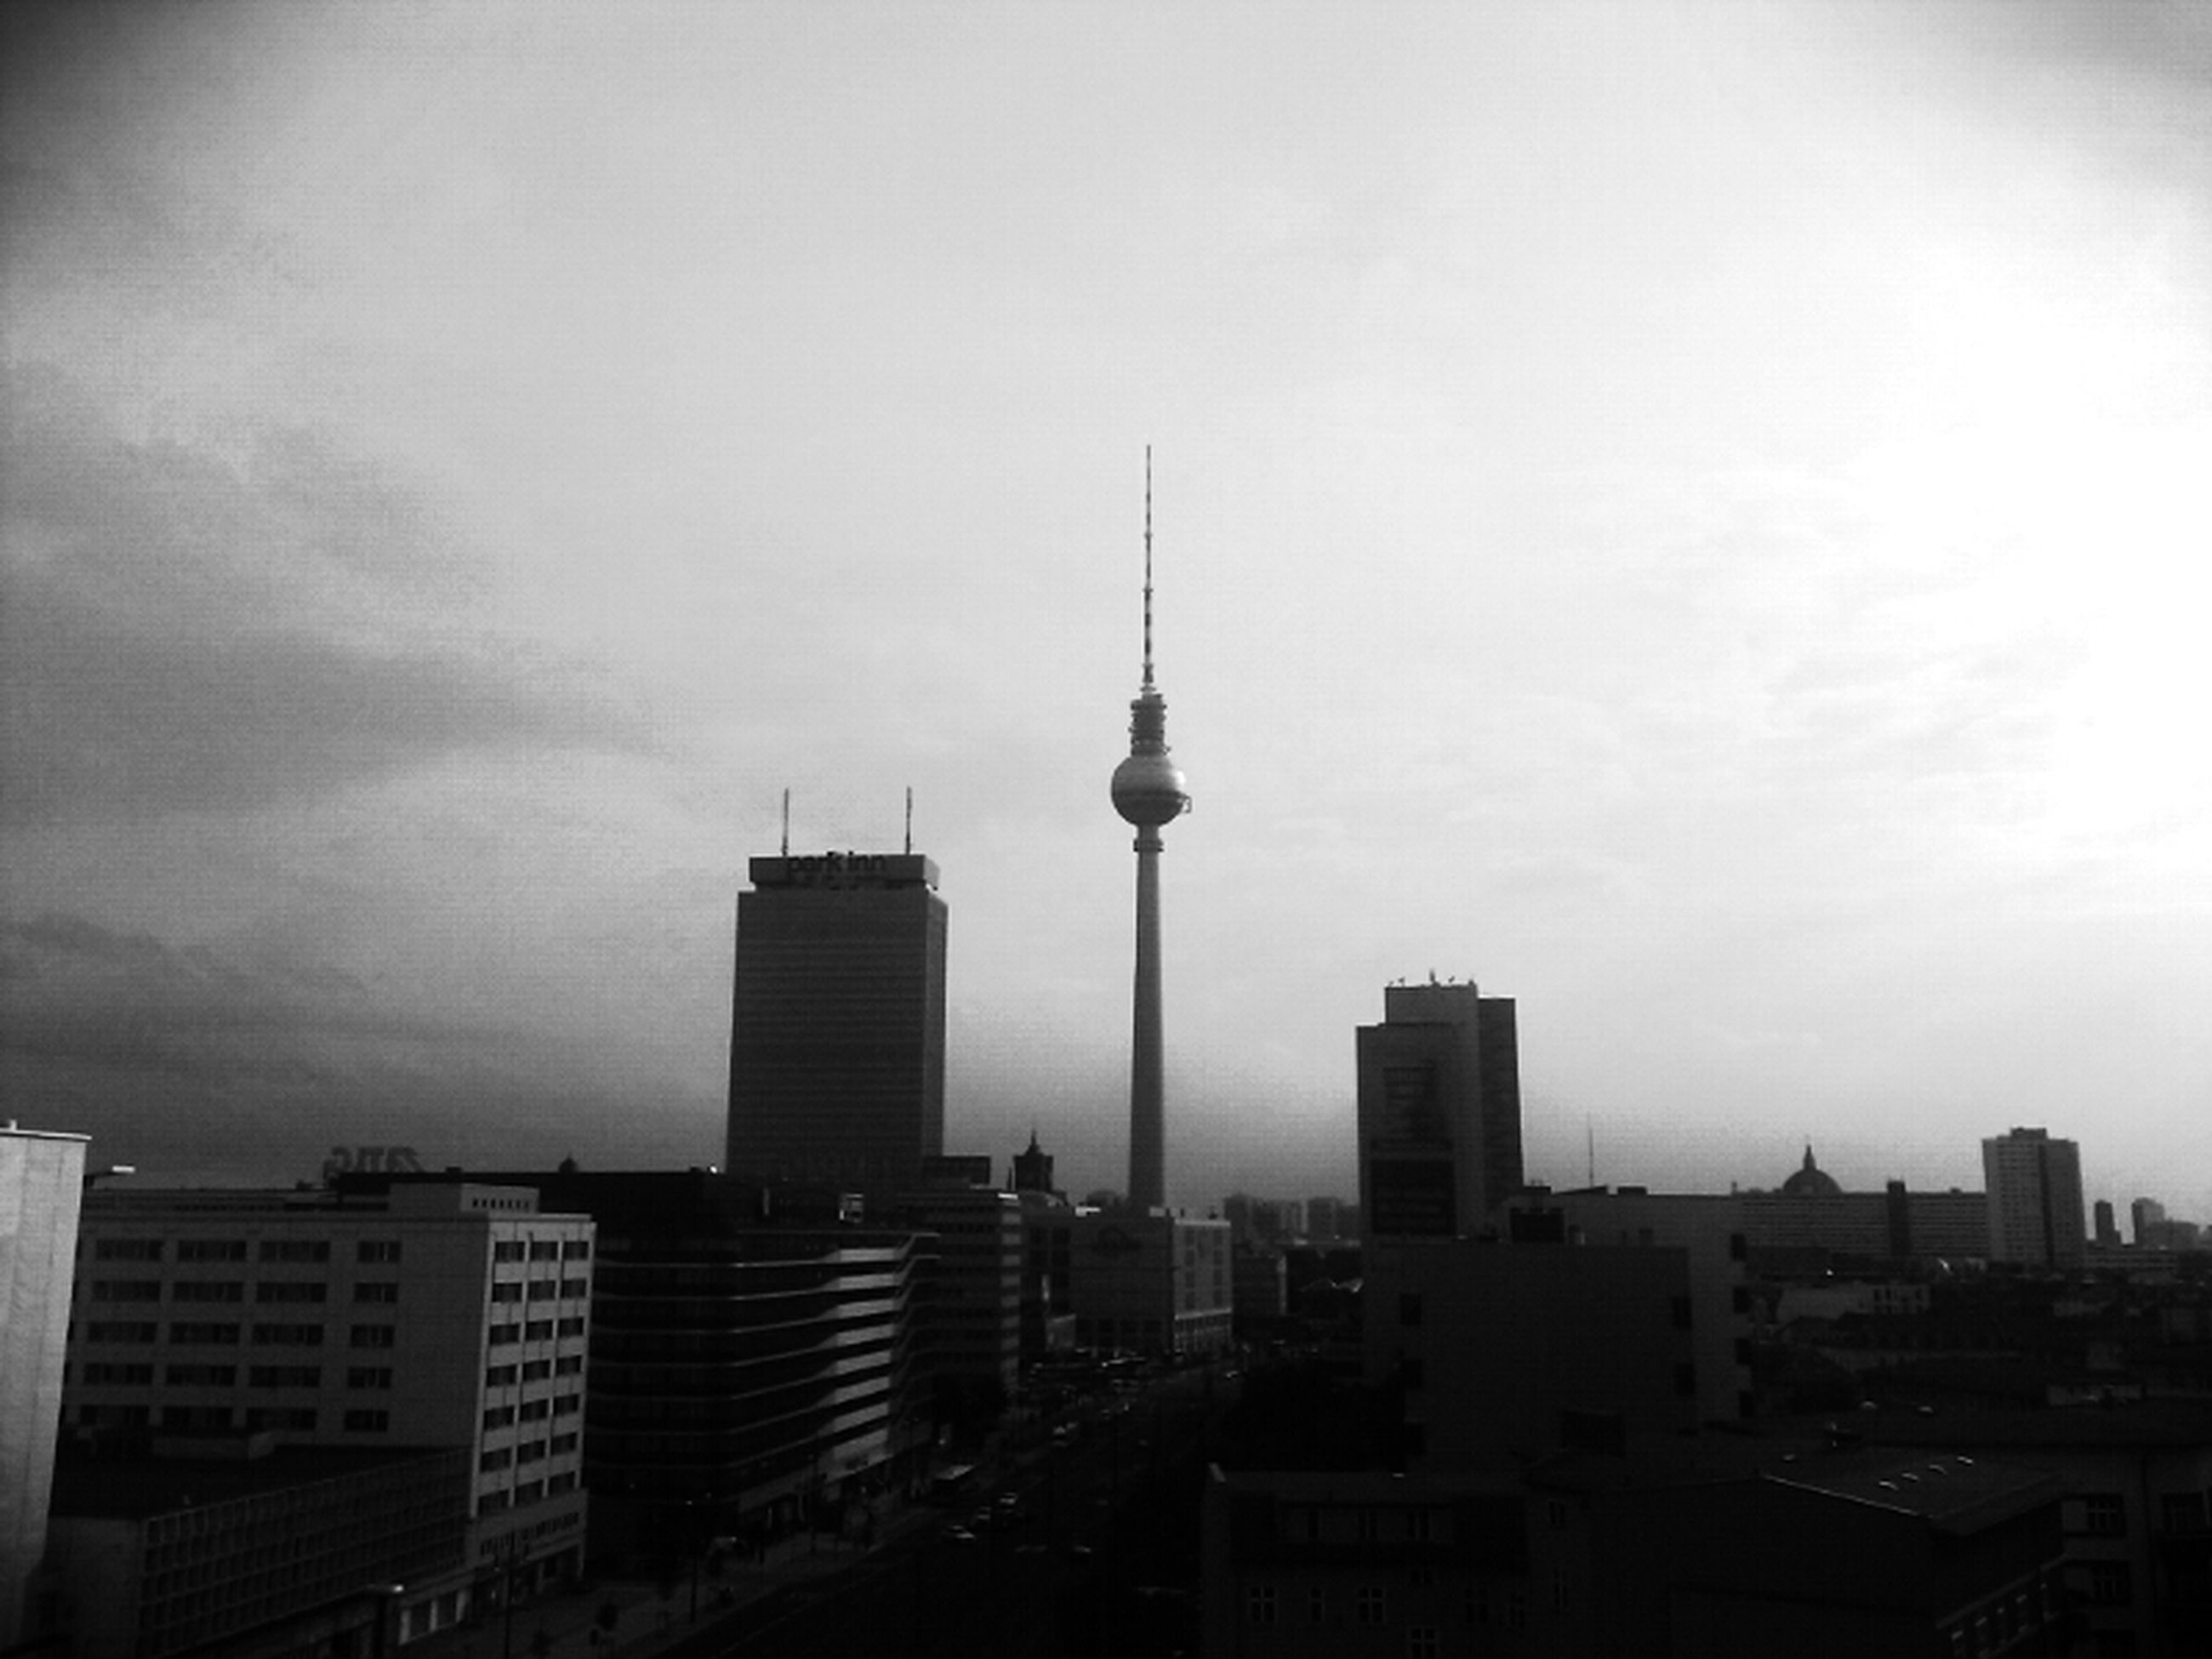 architecture, building exterior, built structure, tower, tall - high, city, communications tower, spire, skyscraper, capital cities, international landmark, fernsehturm, travel destinations, famous place, television tower, sky, tourism, cityscape, communication, travel